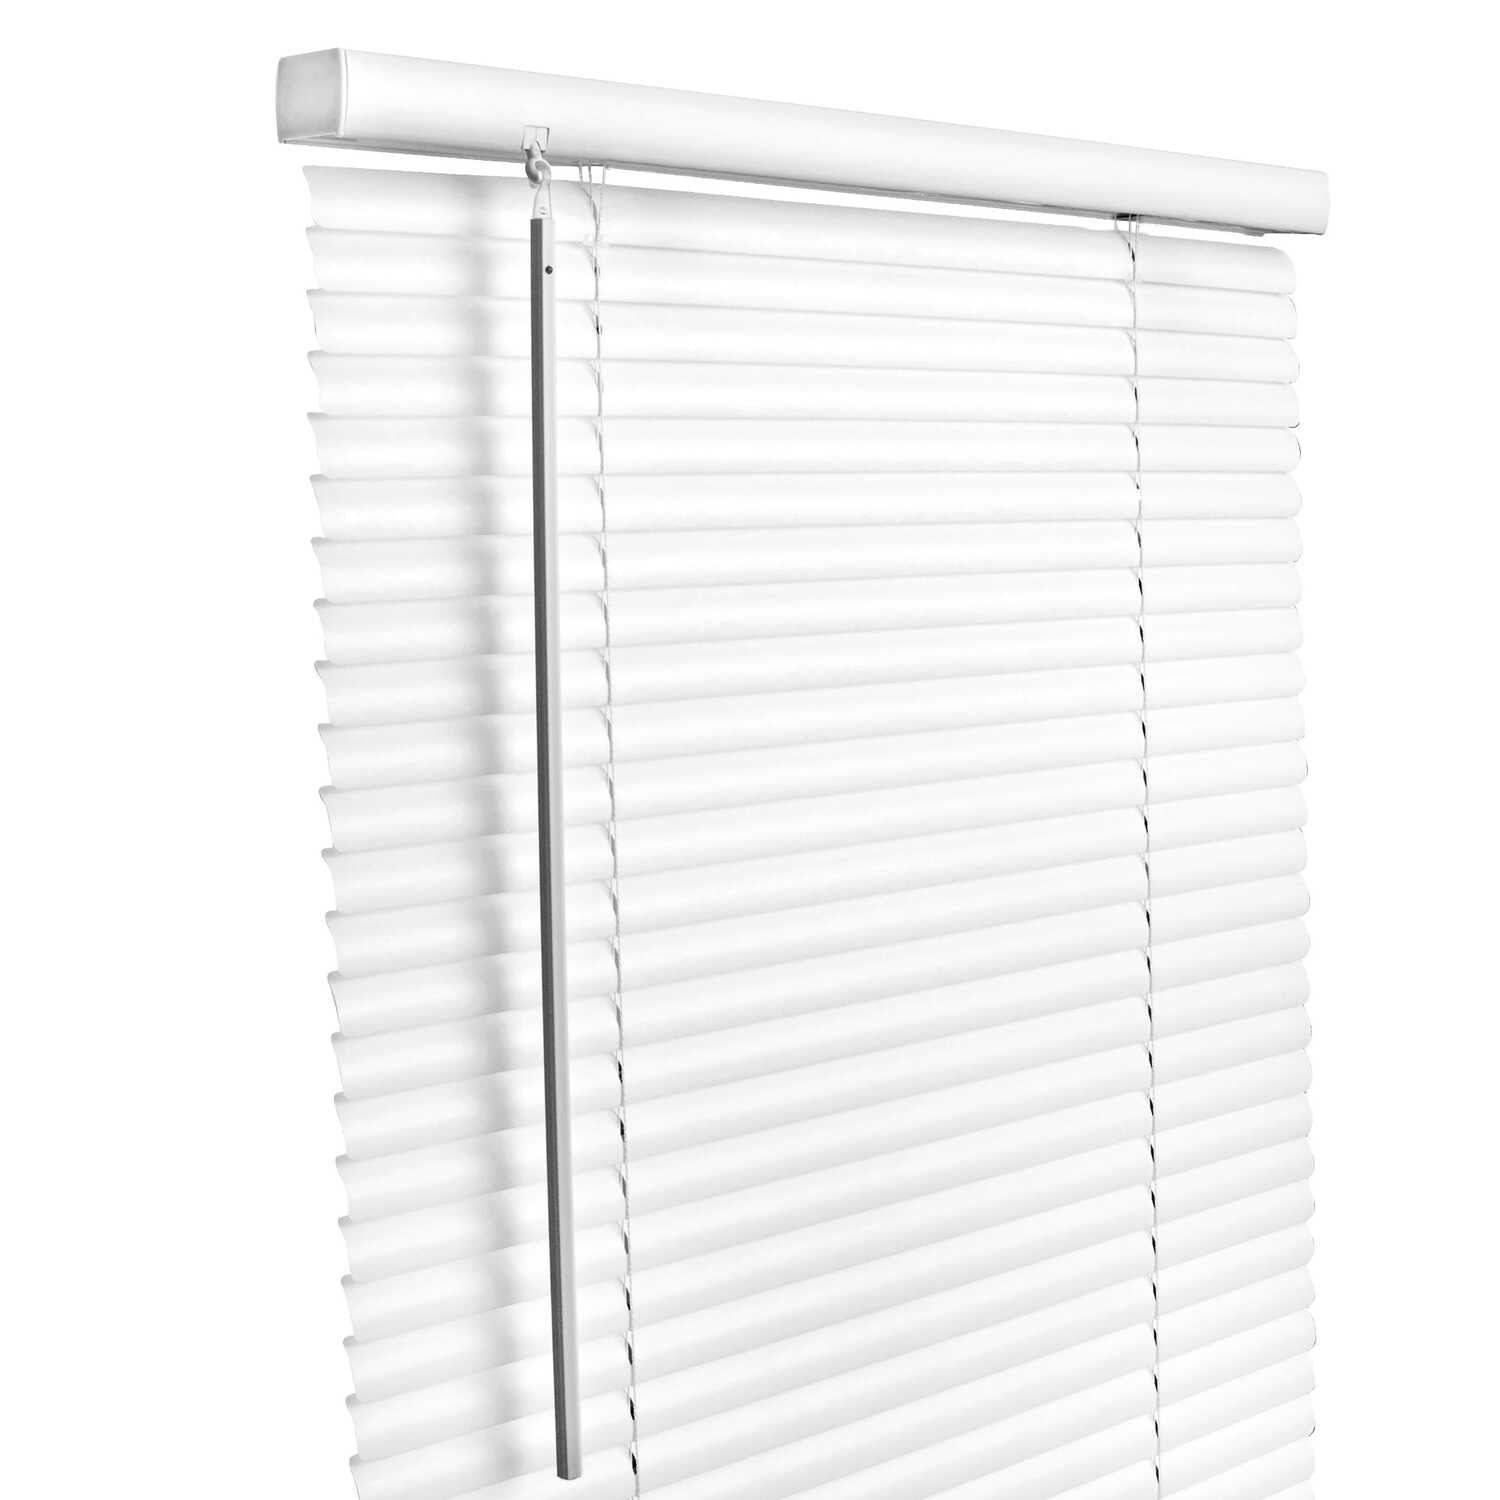 Living Accents  Vinyl  1 in. Mini-Blinds  60 in. W x 64 in. H White  Cordless